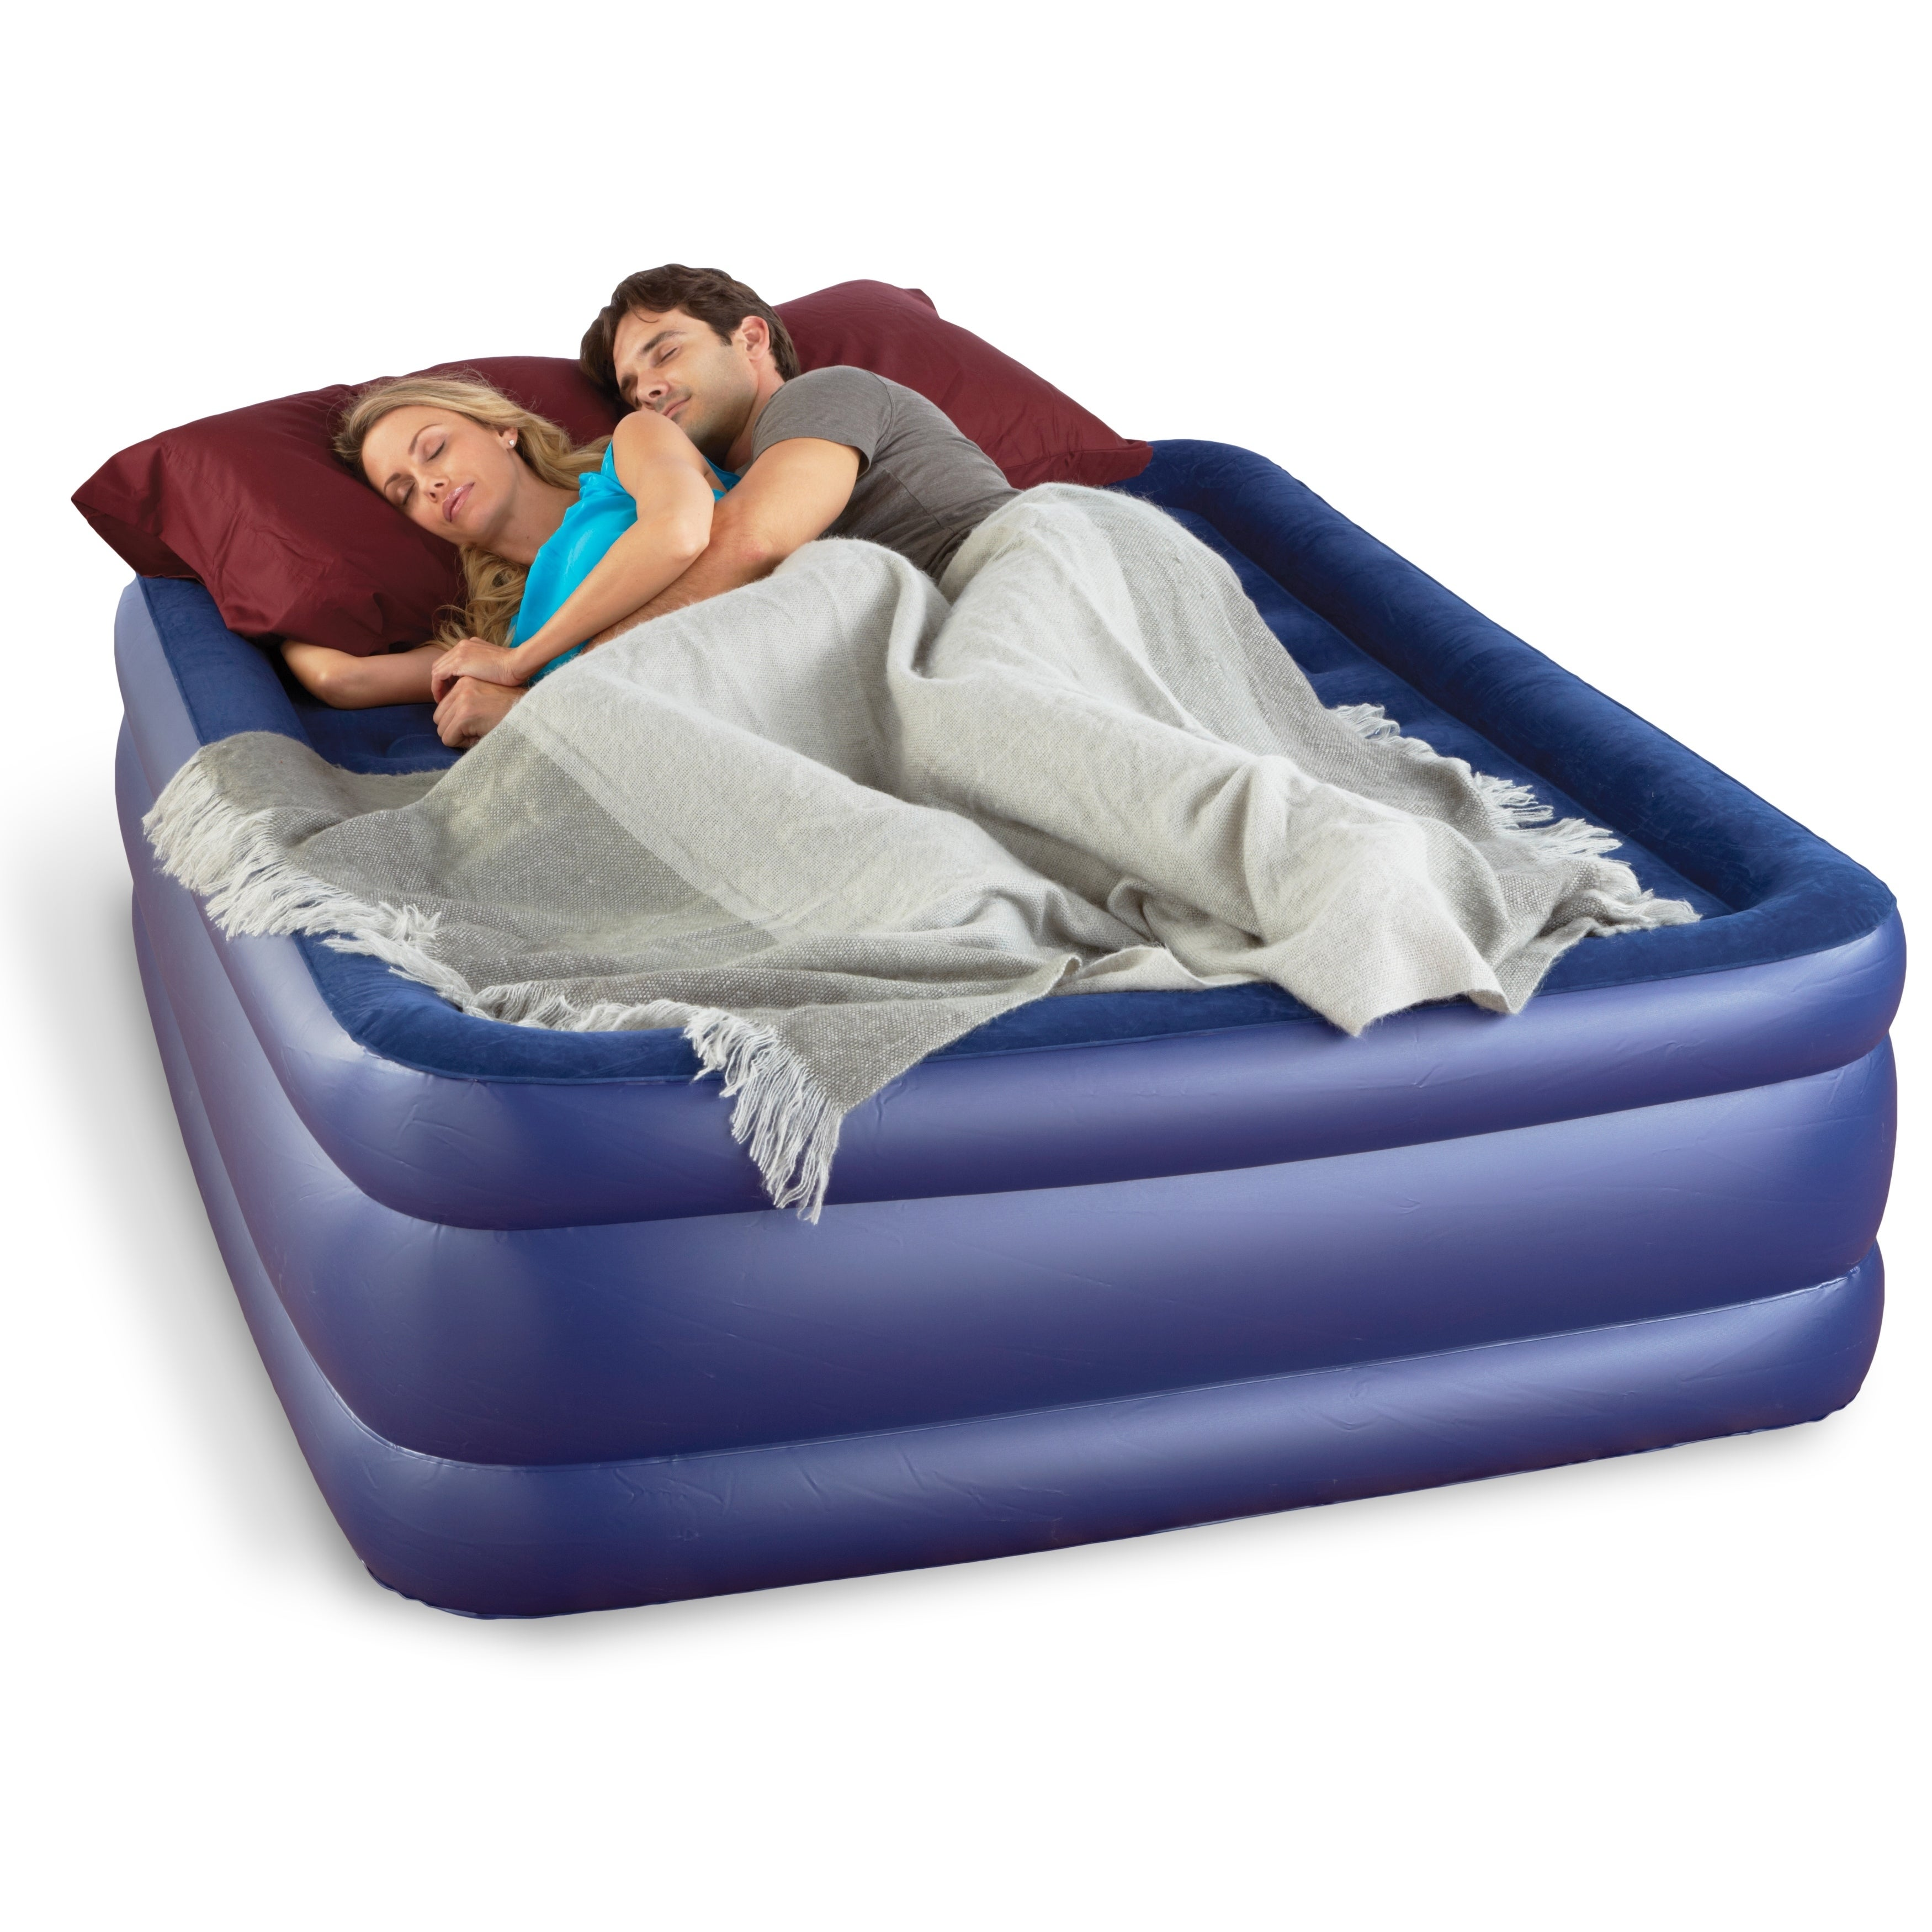 sale air new bed bath beyond policy return sears returns gallery beautiful and of mattress